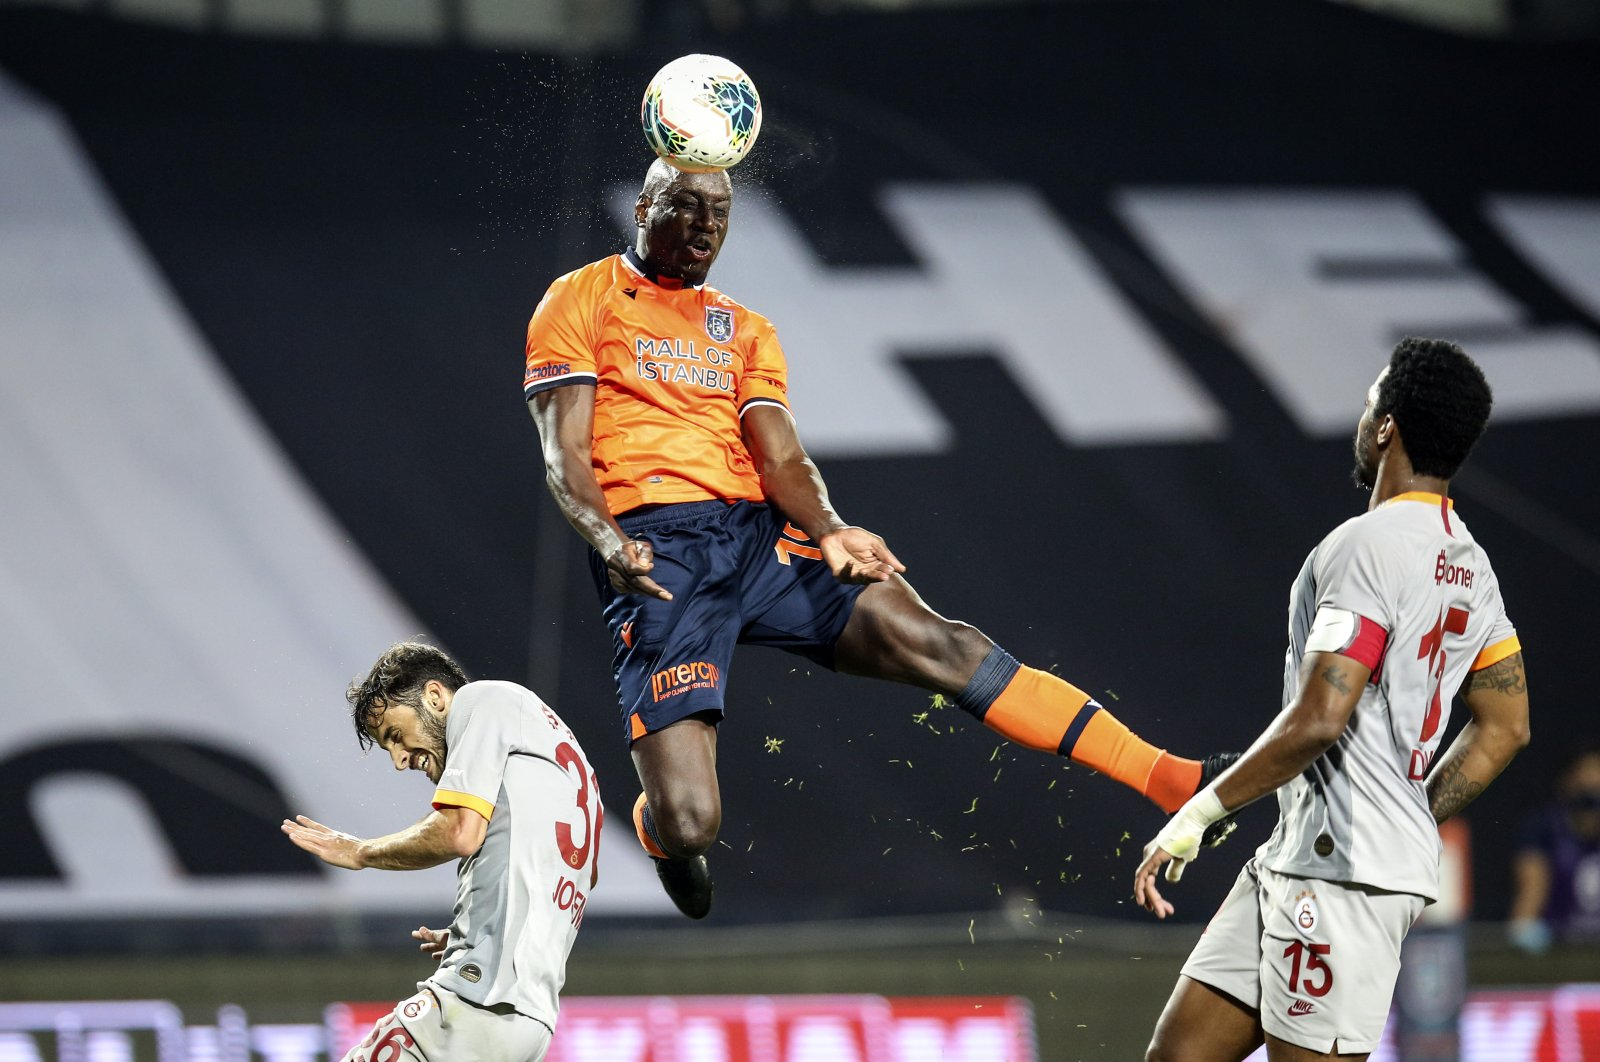 Başakşehir's Demba Ba (C) confronts Galatasaray's Ryan Donk (R) and Marcelo Saracchi (L) during the match in Istanbul, Turkey, June 28, 2020. (AA Photo)